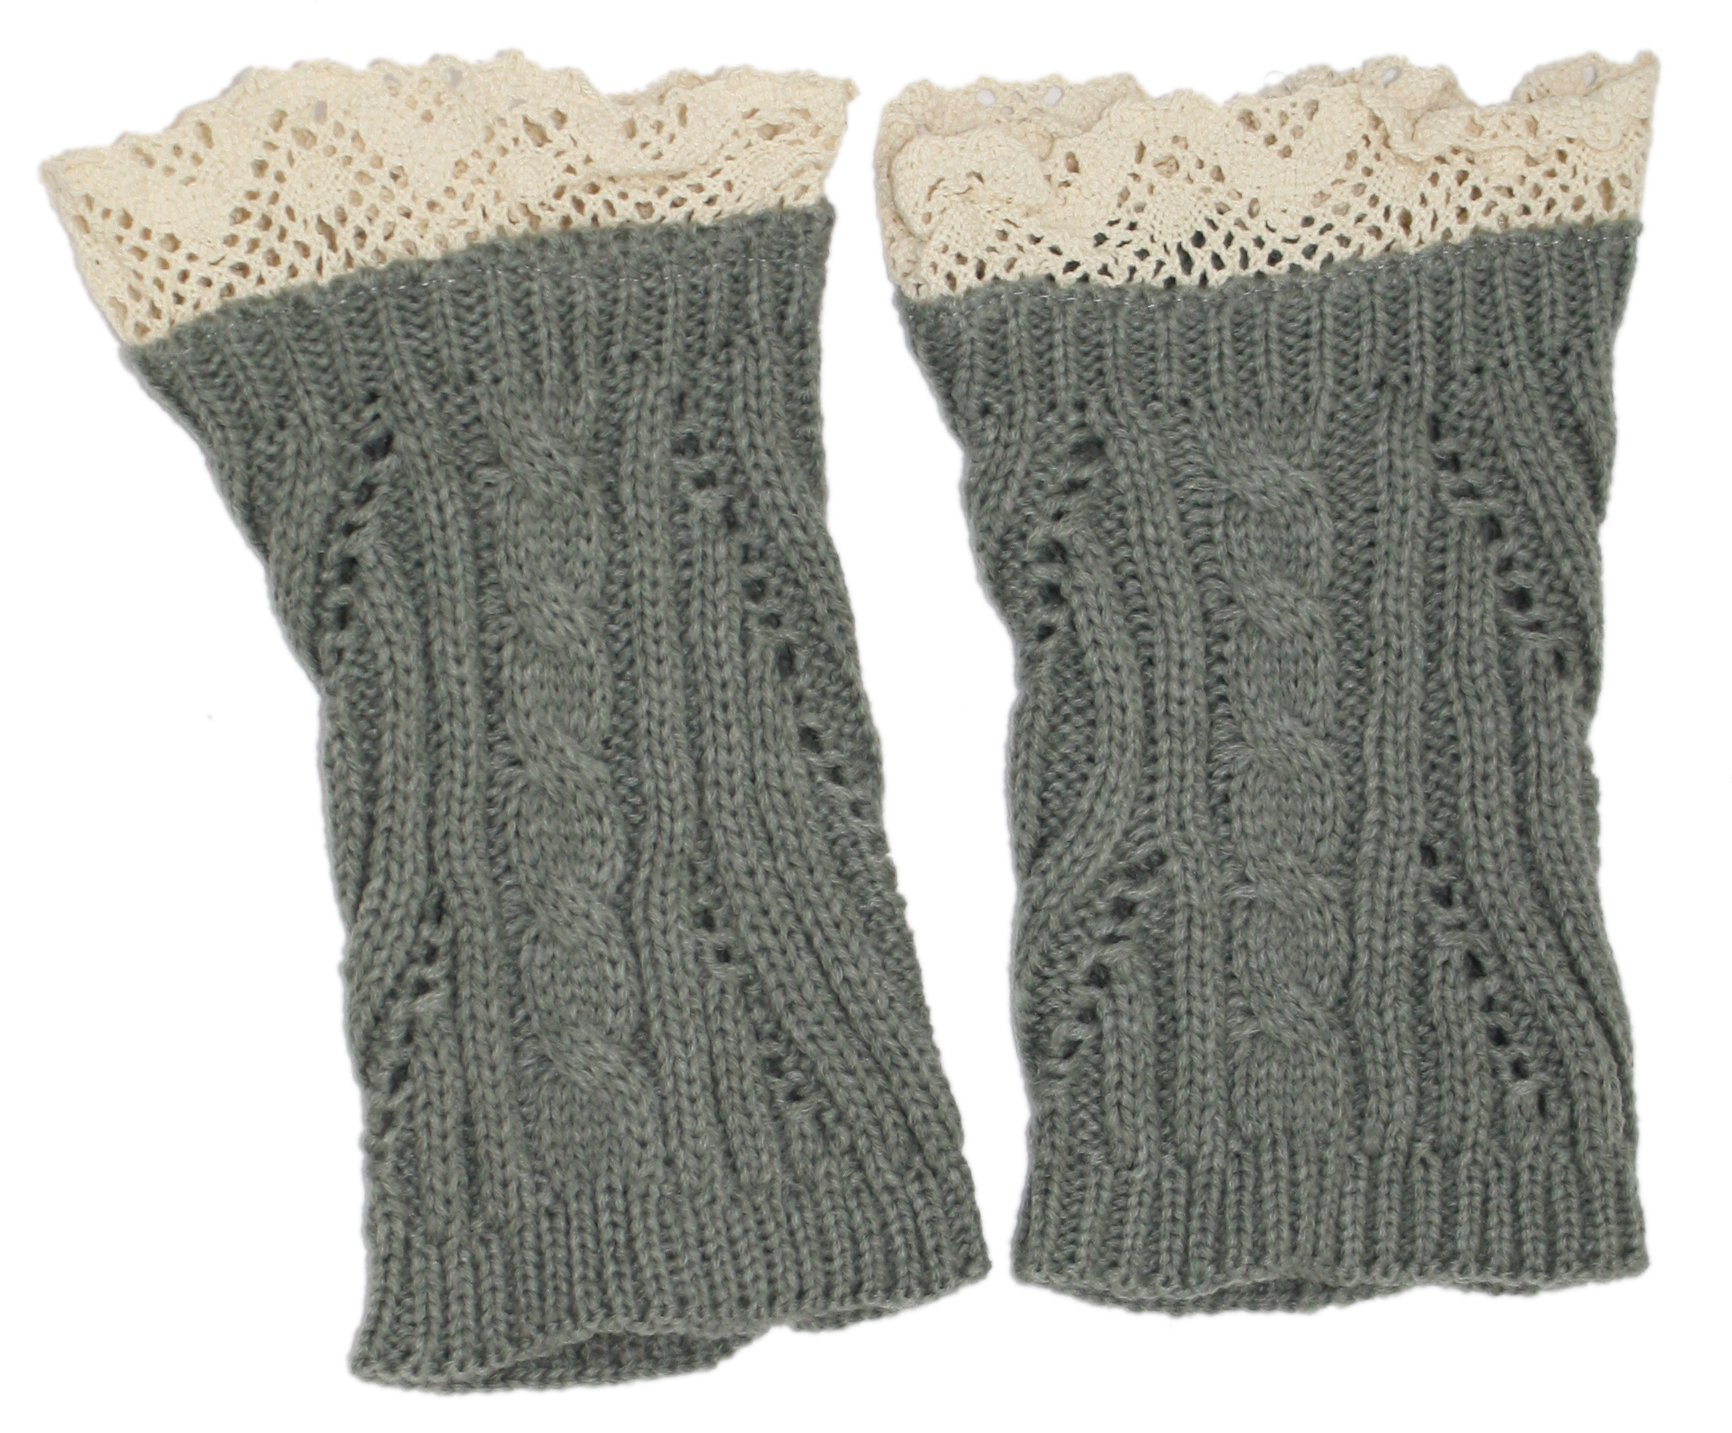 Modern Minute - Lace Top Twisted Cable Knit Legwarmer Boot Topper in Grey